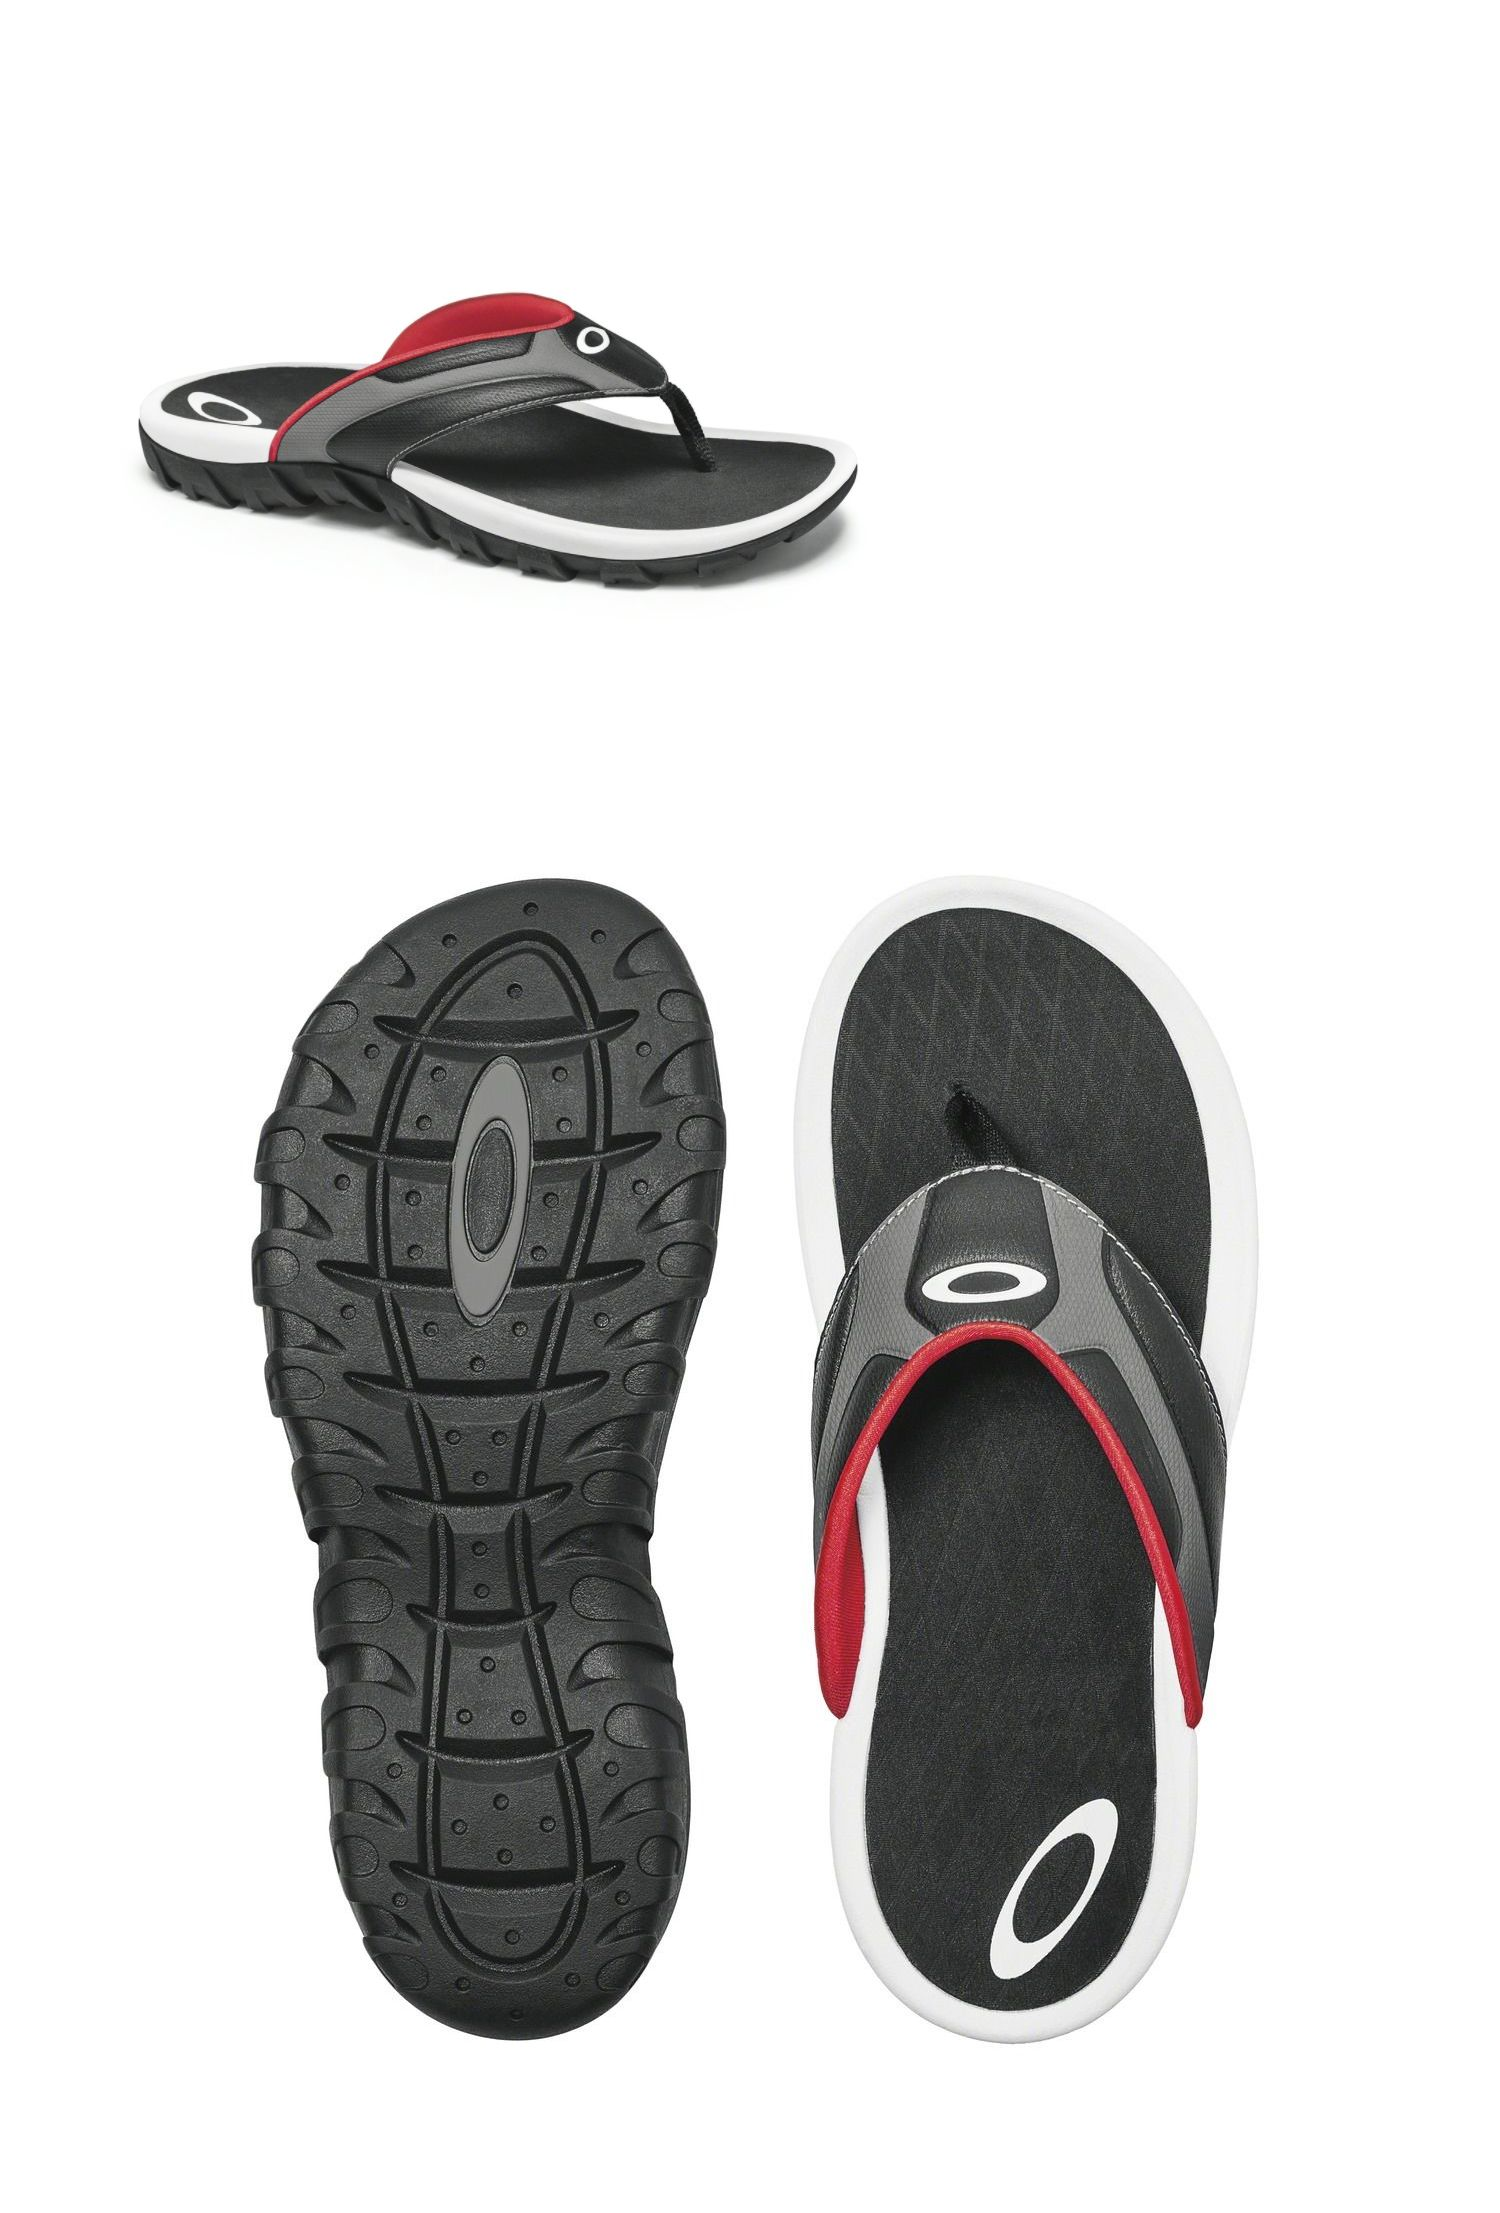 534bd350ae5 Sandals and Flip Flops 11504  New Oakley Men Refraction Sandals Flip Flop  Bob Romeo Medusa Xx Size 10